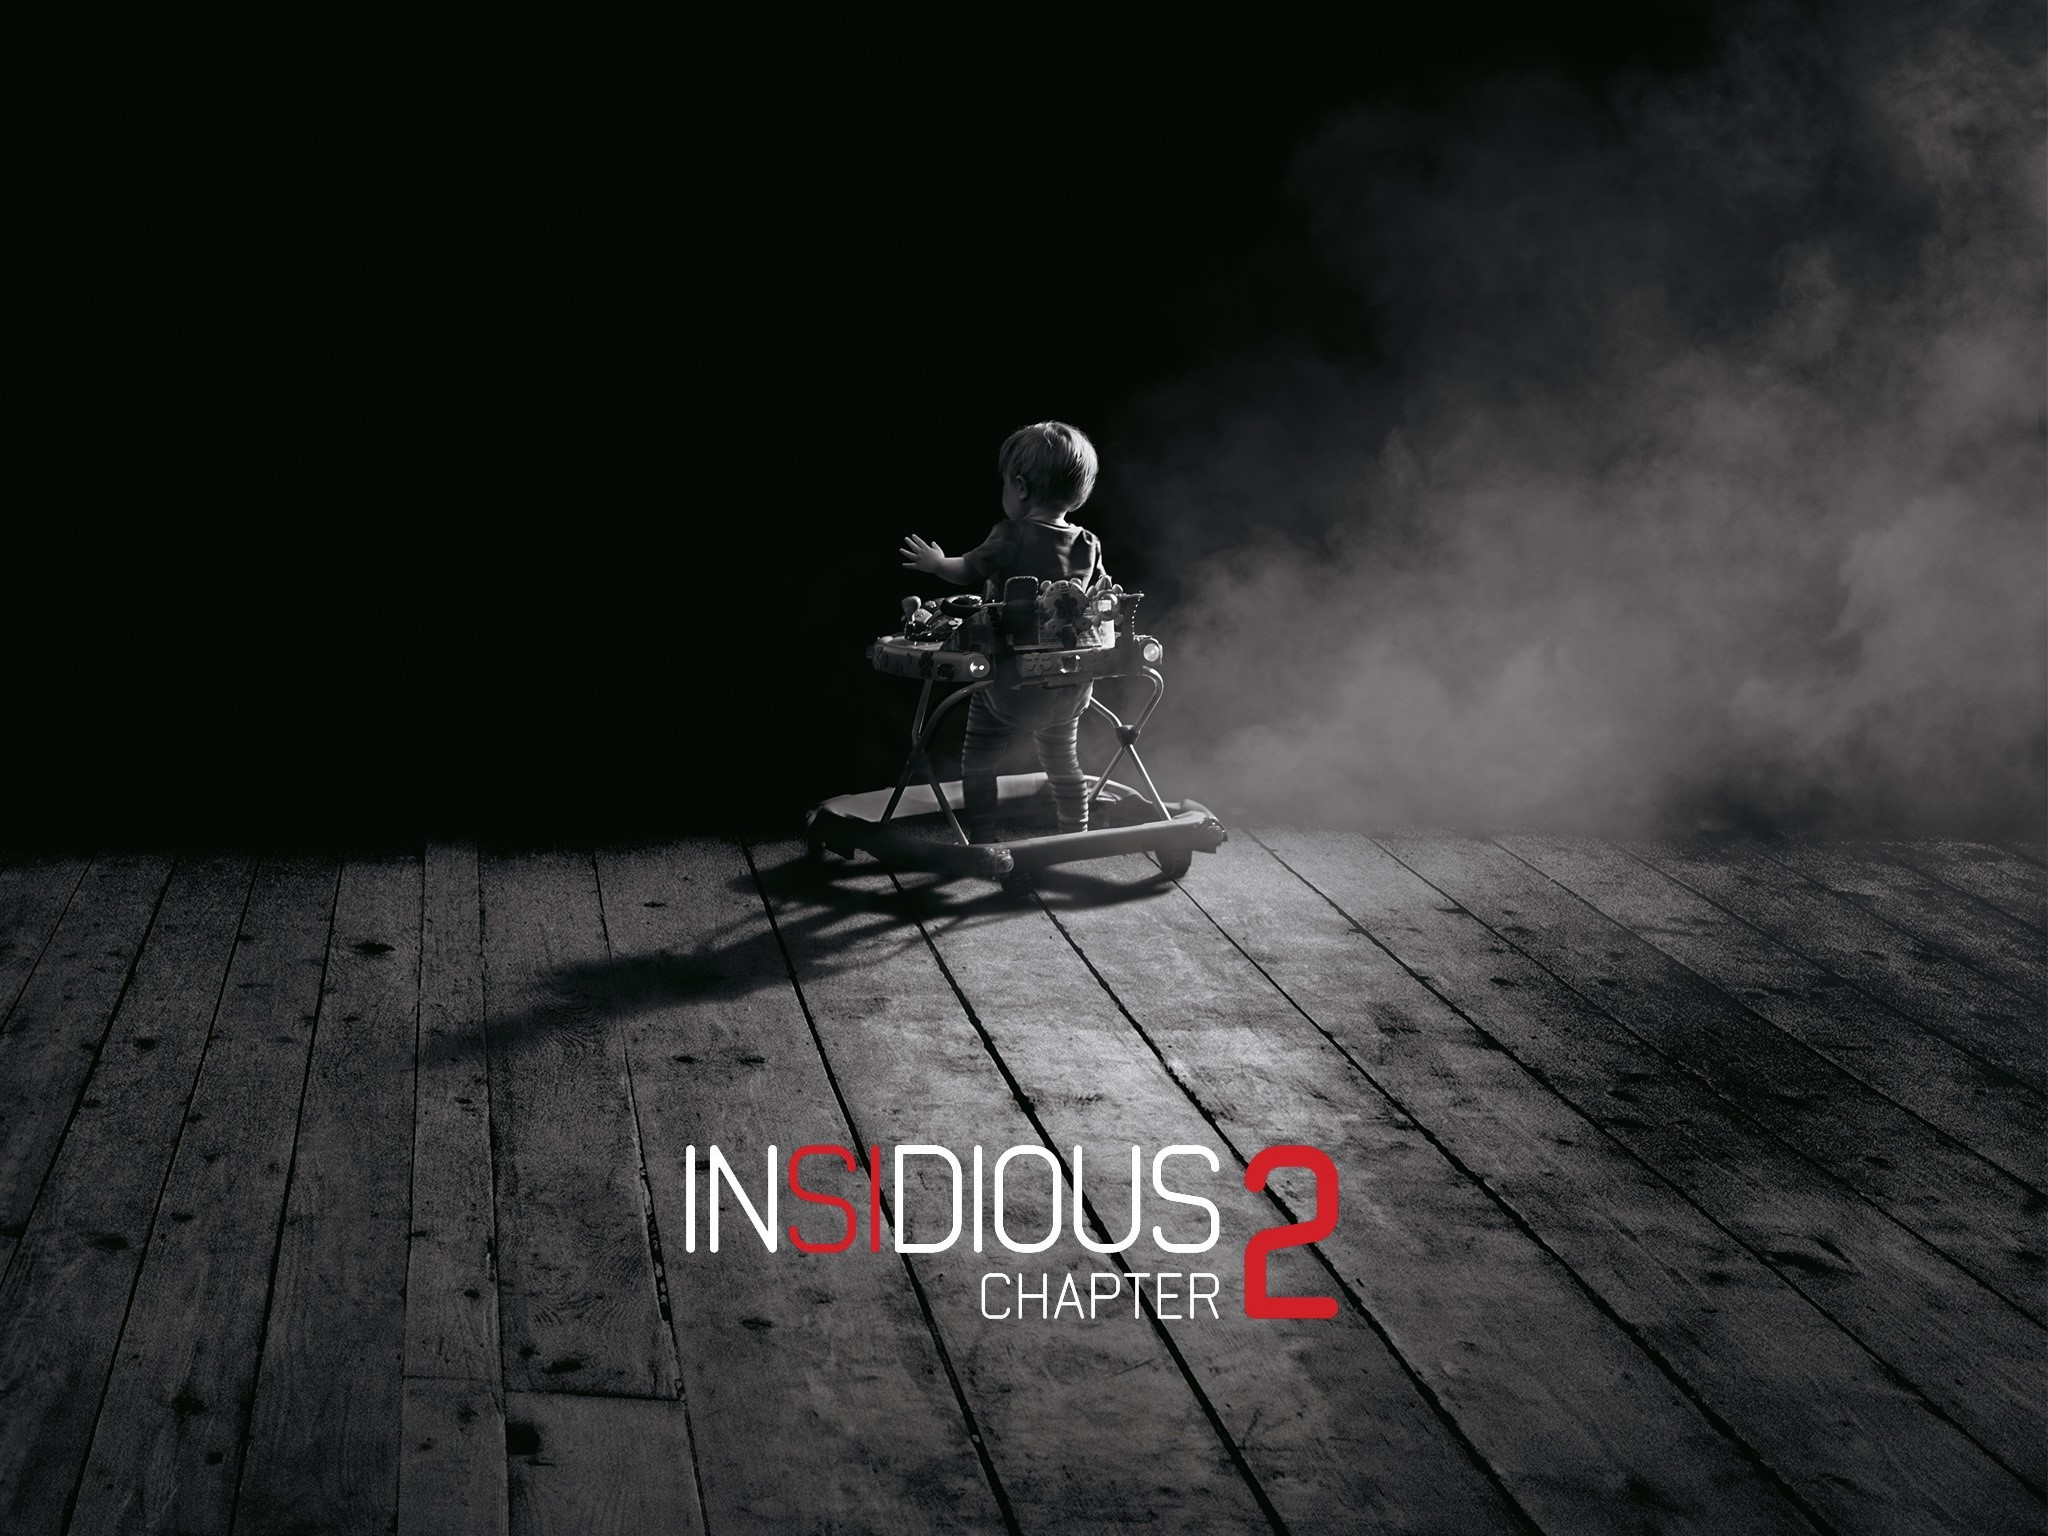 Wallpaper Insidious Chapter 2 Images